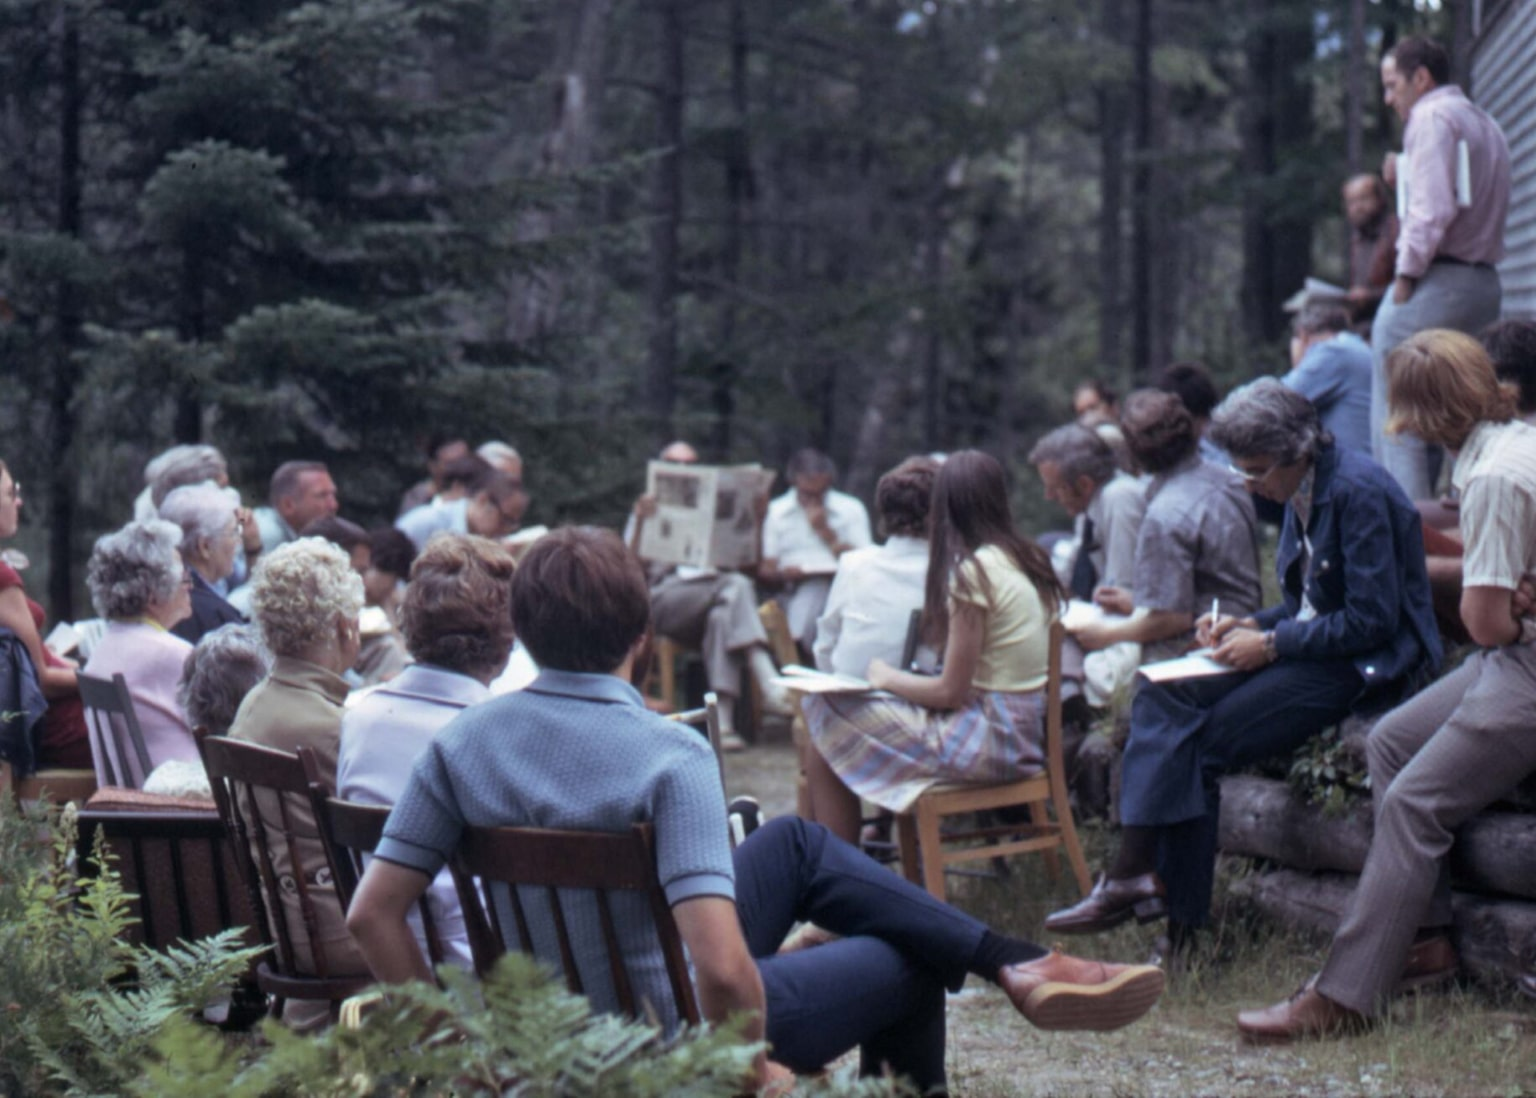 A photograph from 1976 depicting the Adirondack Park Agency (APA) Meeting at Elk Lake.